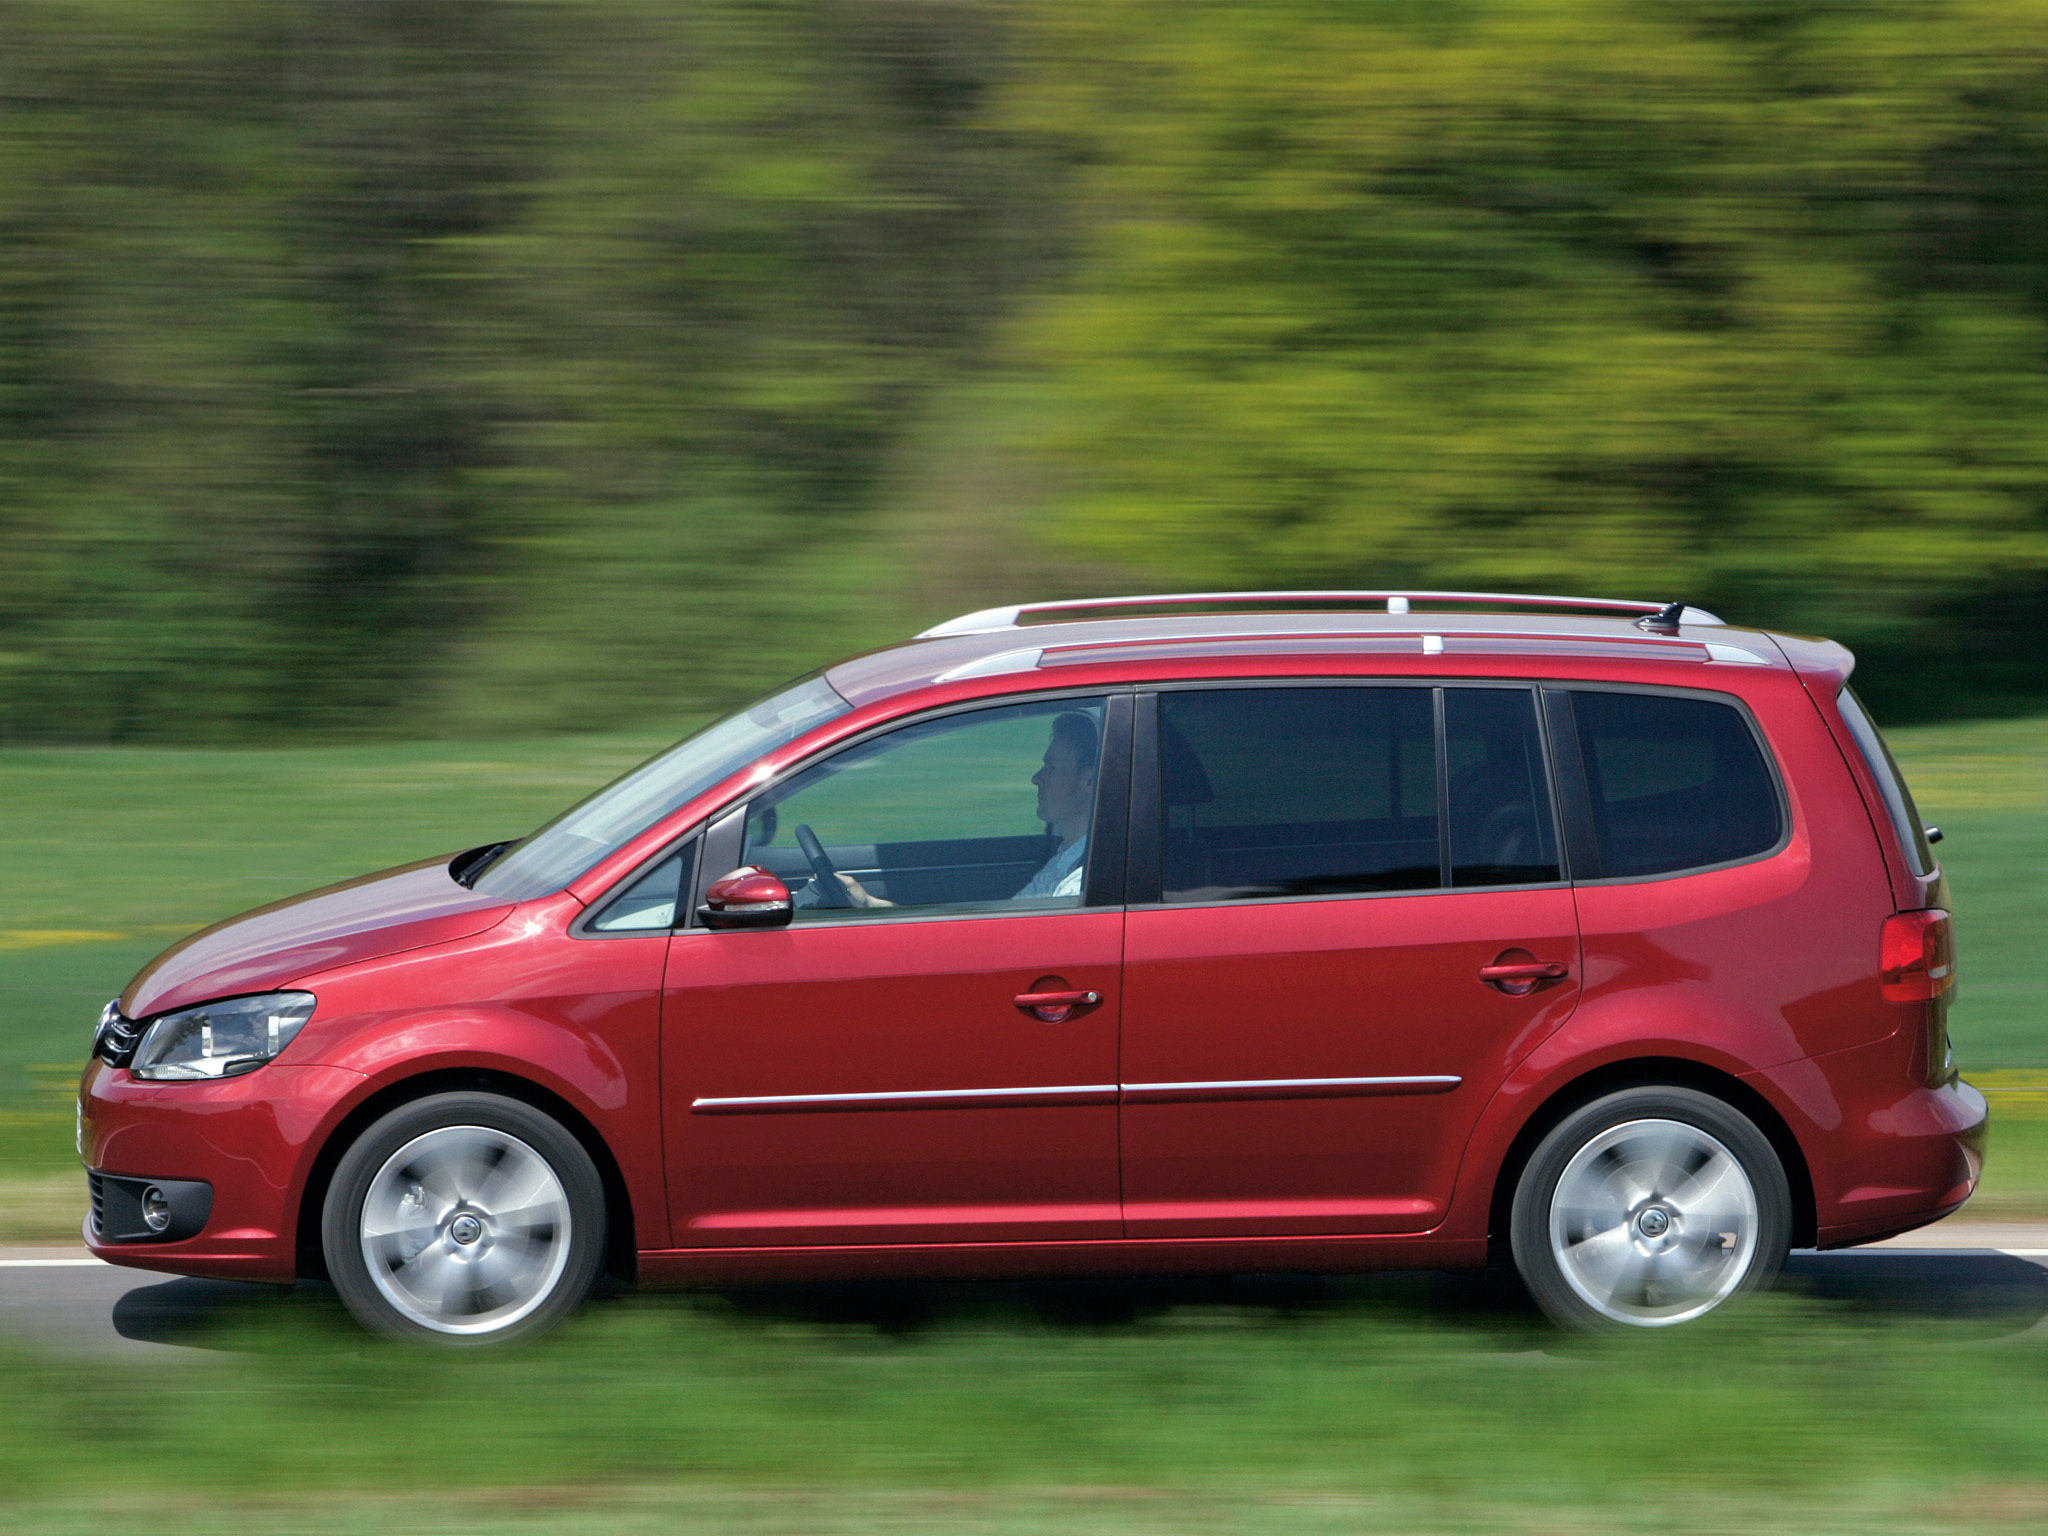 volkswagen touran 2010 volkswagen touran 2010 photo 05 car in pictures car photo gallery. Black Bedroom Furniture Sets. Home Design Ideas